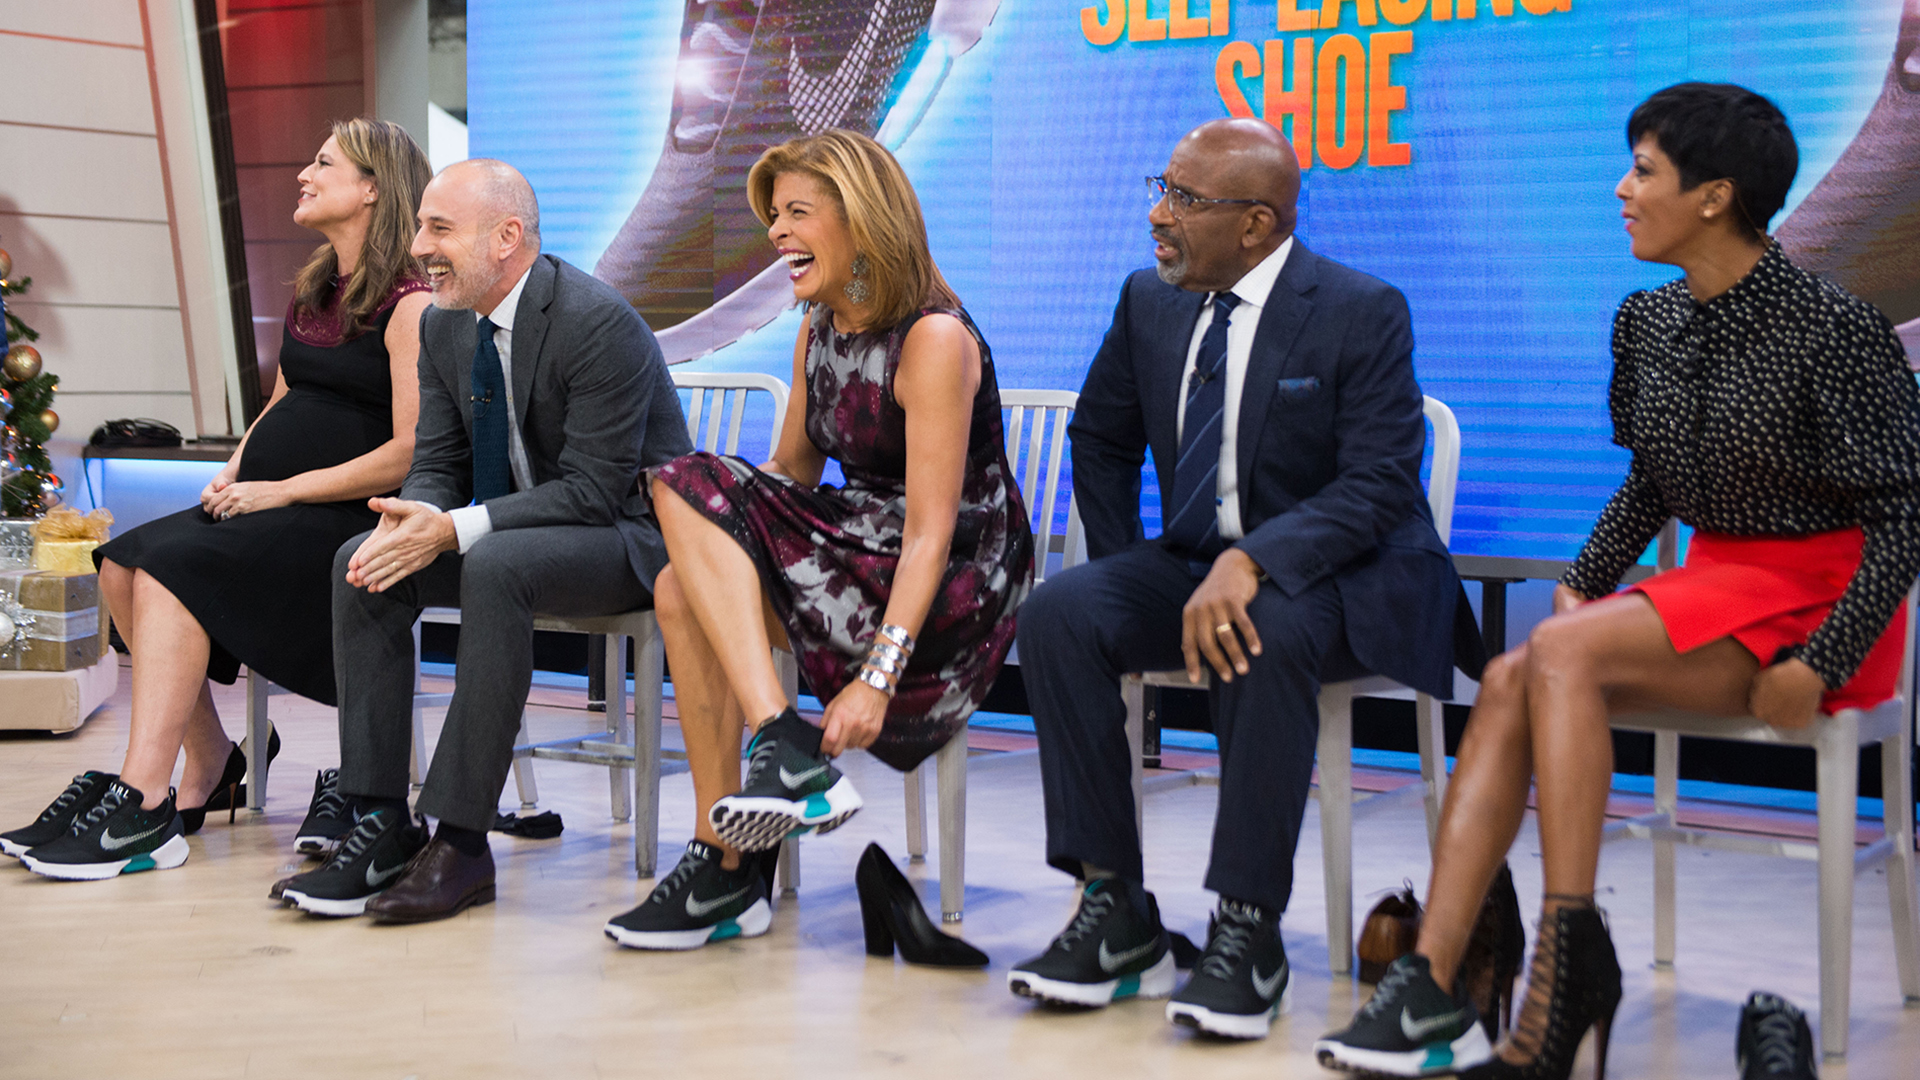 Nike Self Lacing Shoes Today Show